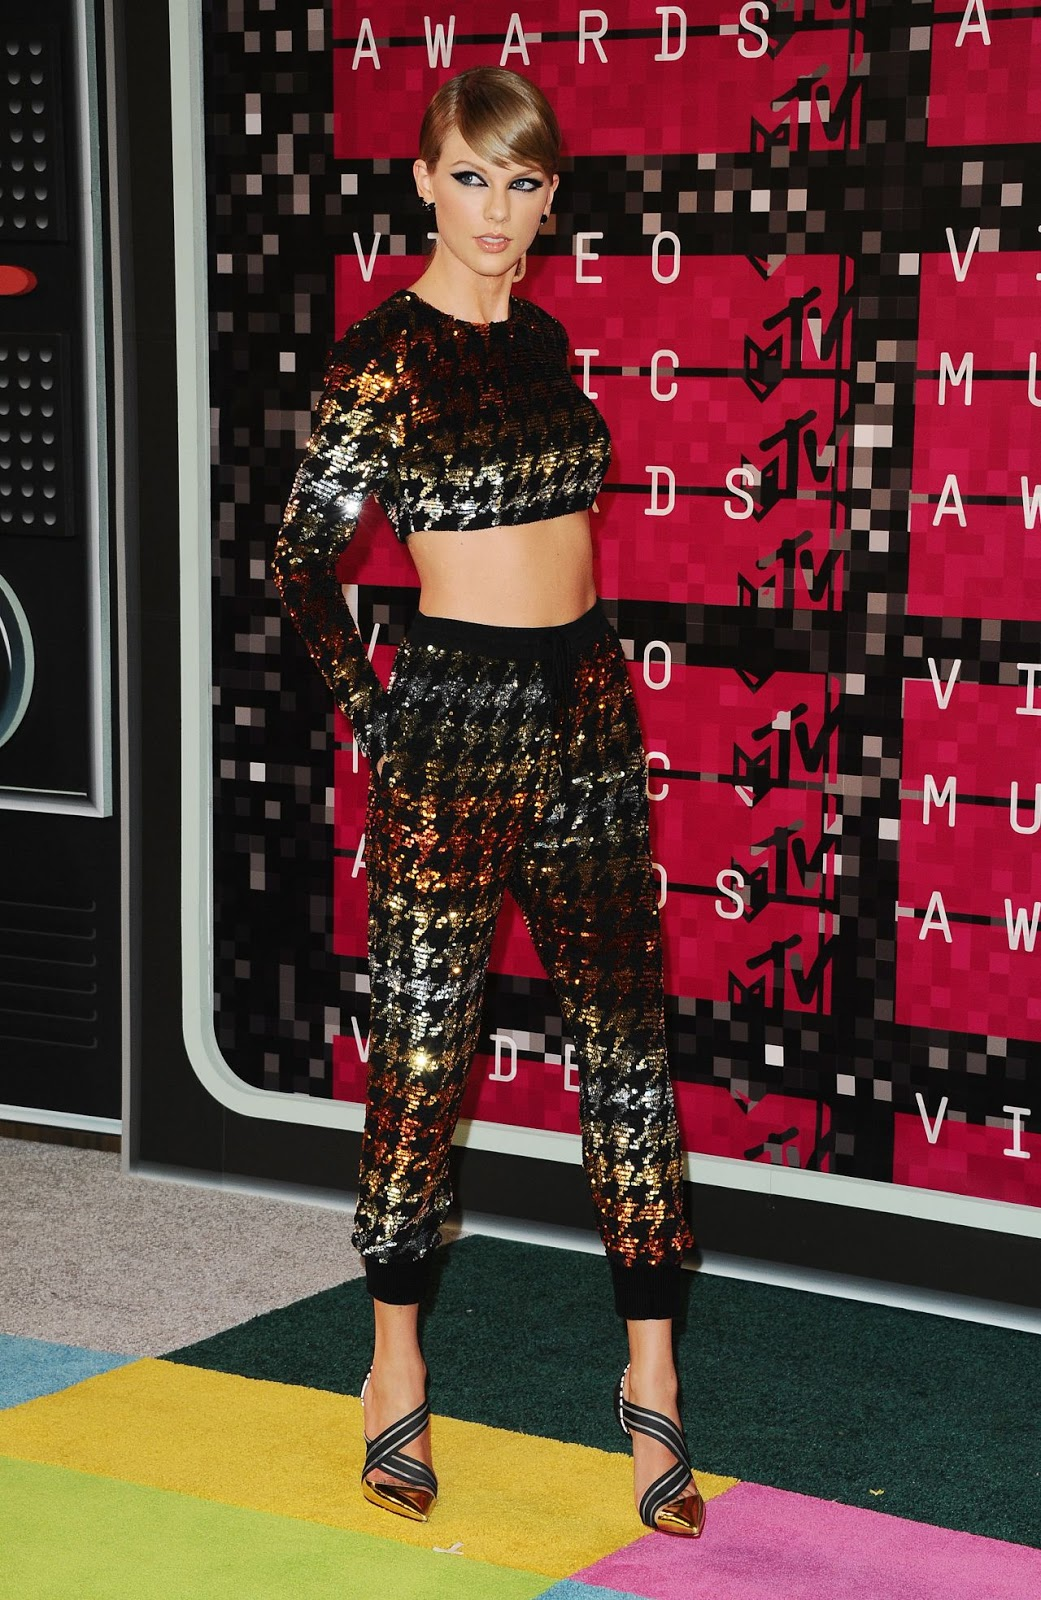 Taylor Swift stuns in sequined houndstooth two-piece at the VMA's 2015